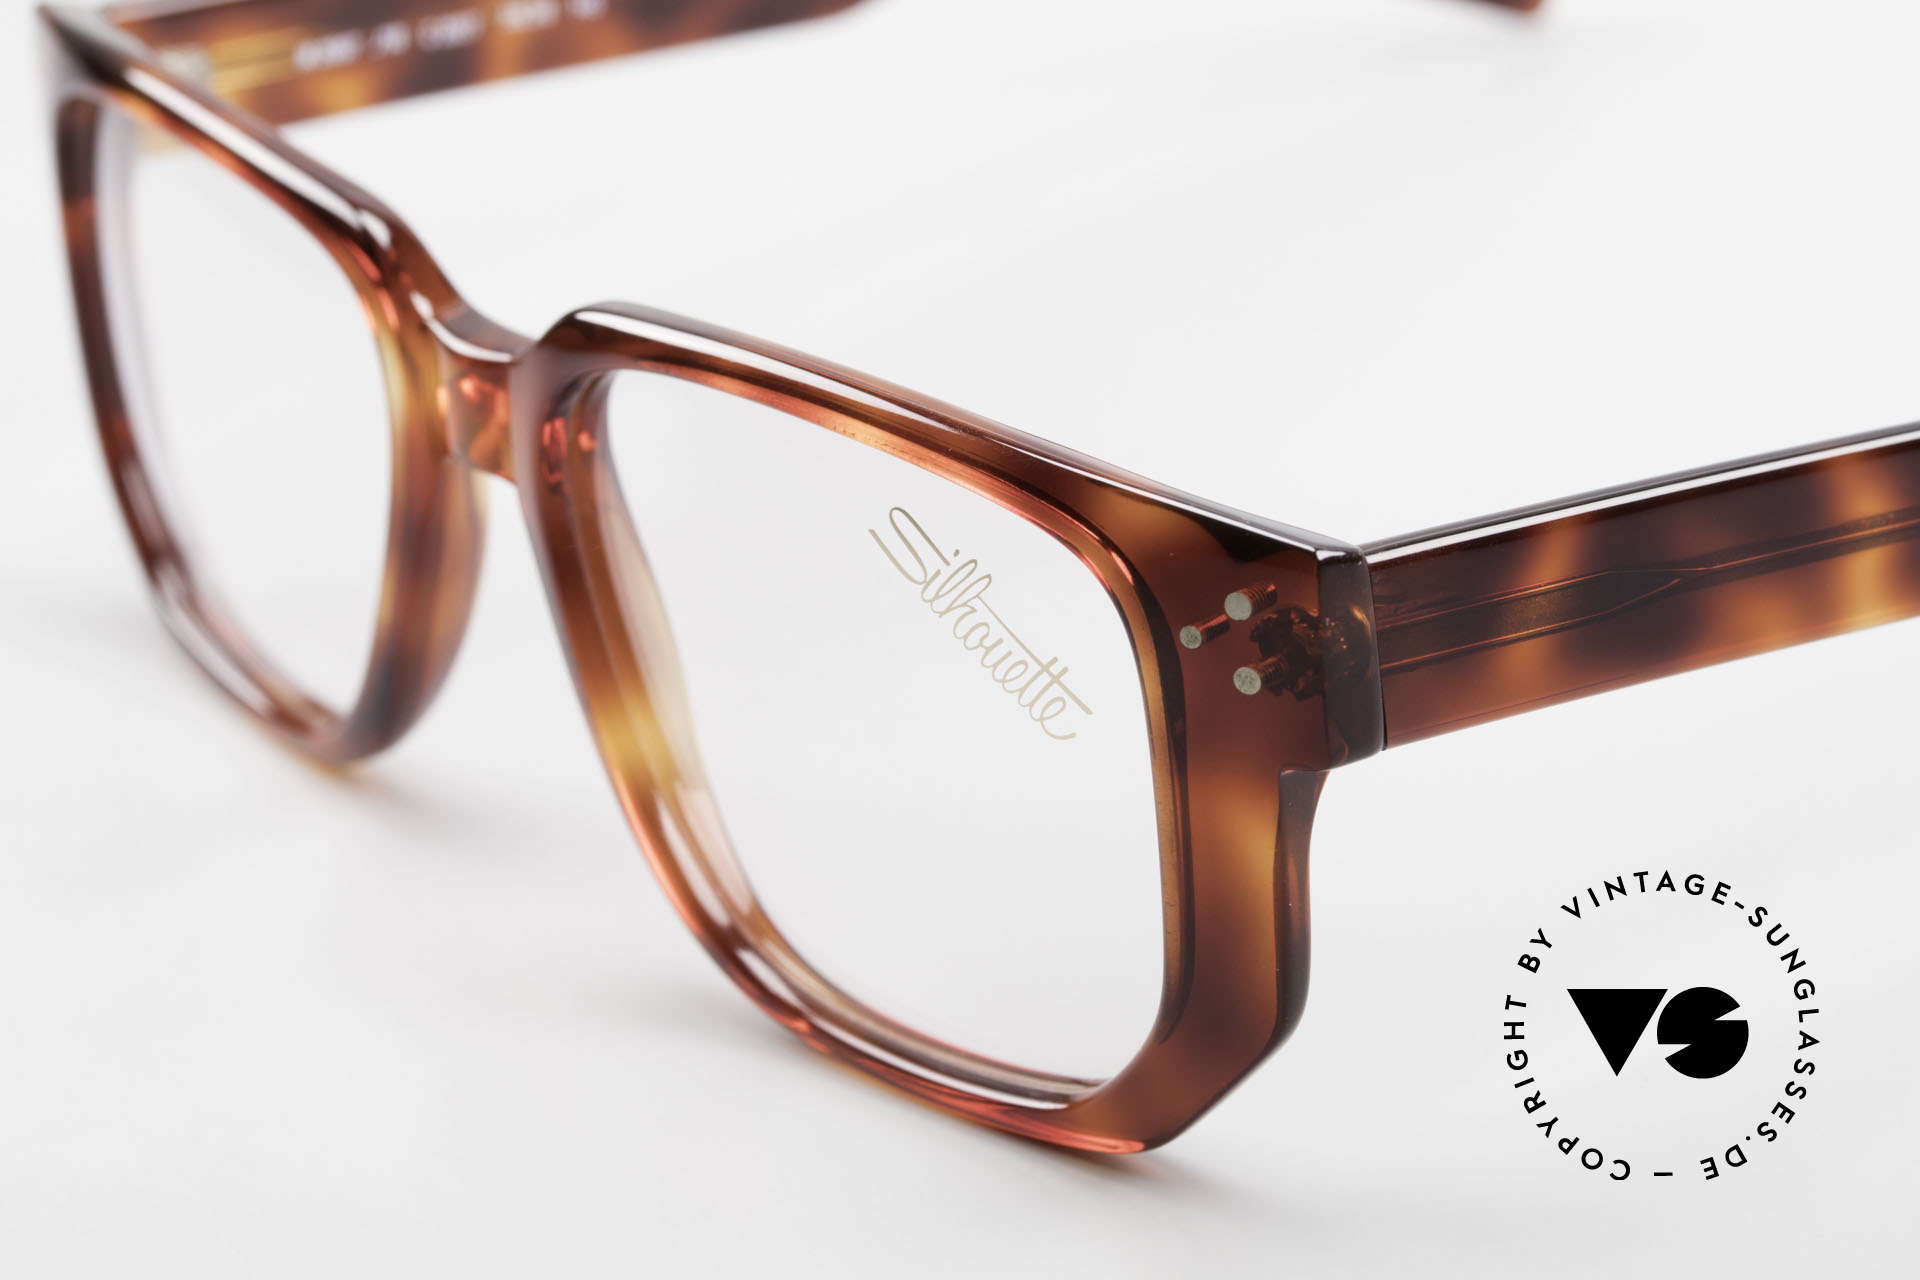 Silhouette M2097 1980's Old School Eyeglasses, built to last (the frame fits lenses of any kind !), Made for Men